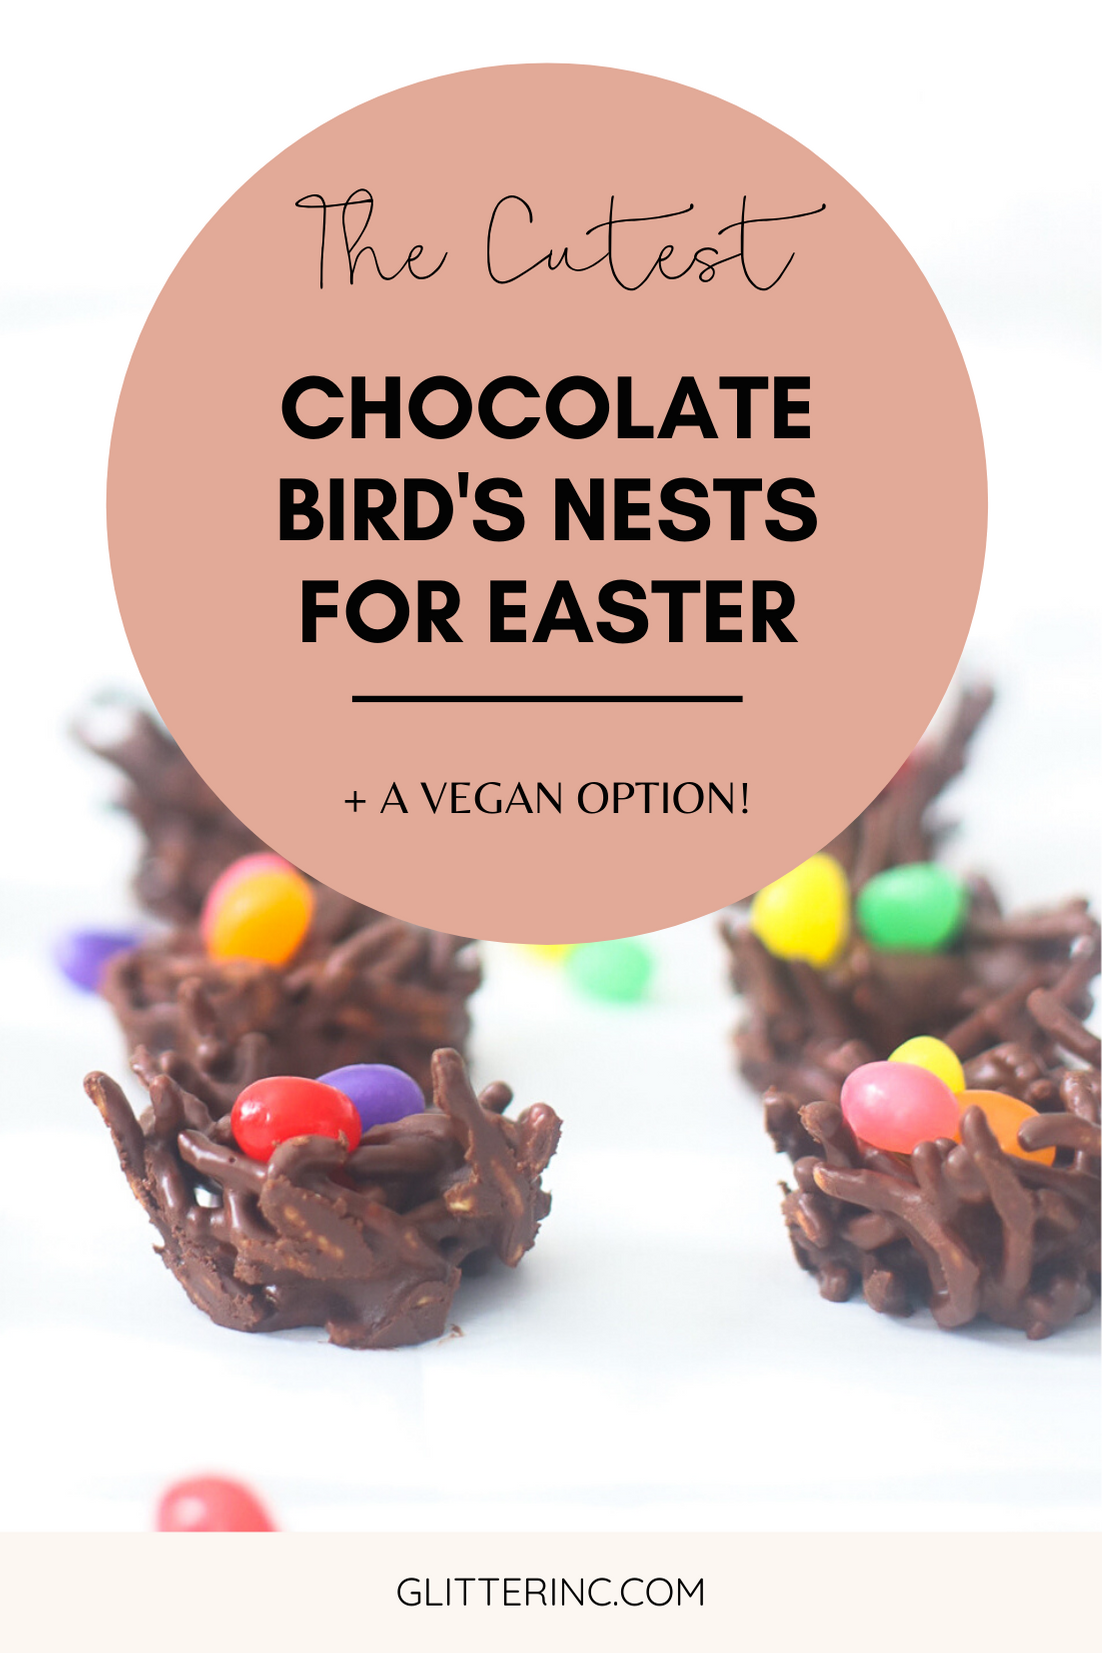 Celebrate Easter and spring with these adorable no-bake chocolate birds nests. The recipe is super simple to make, totally kid-friendly, and with a few easy tweaks, your chocolate bird's nest can be made totally vegan! | glitterinc.com | @glitterinc